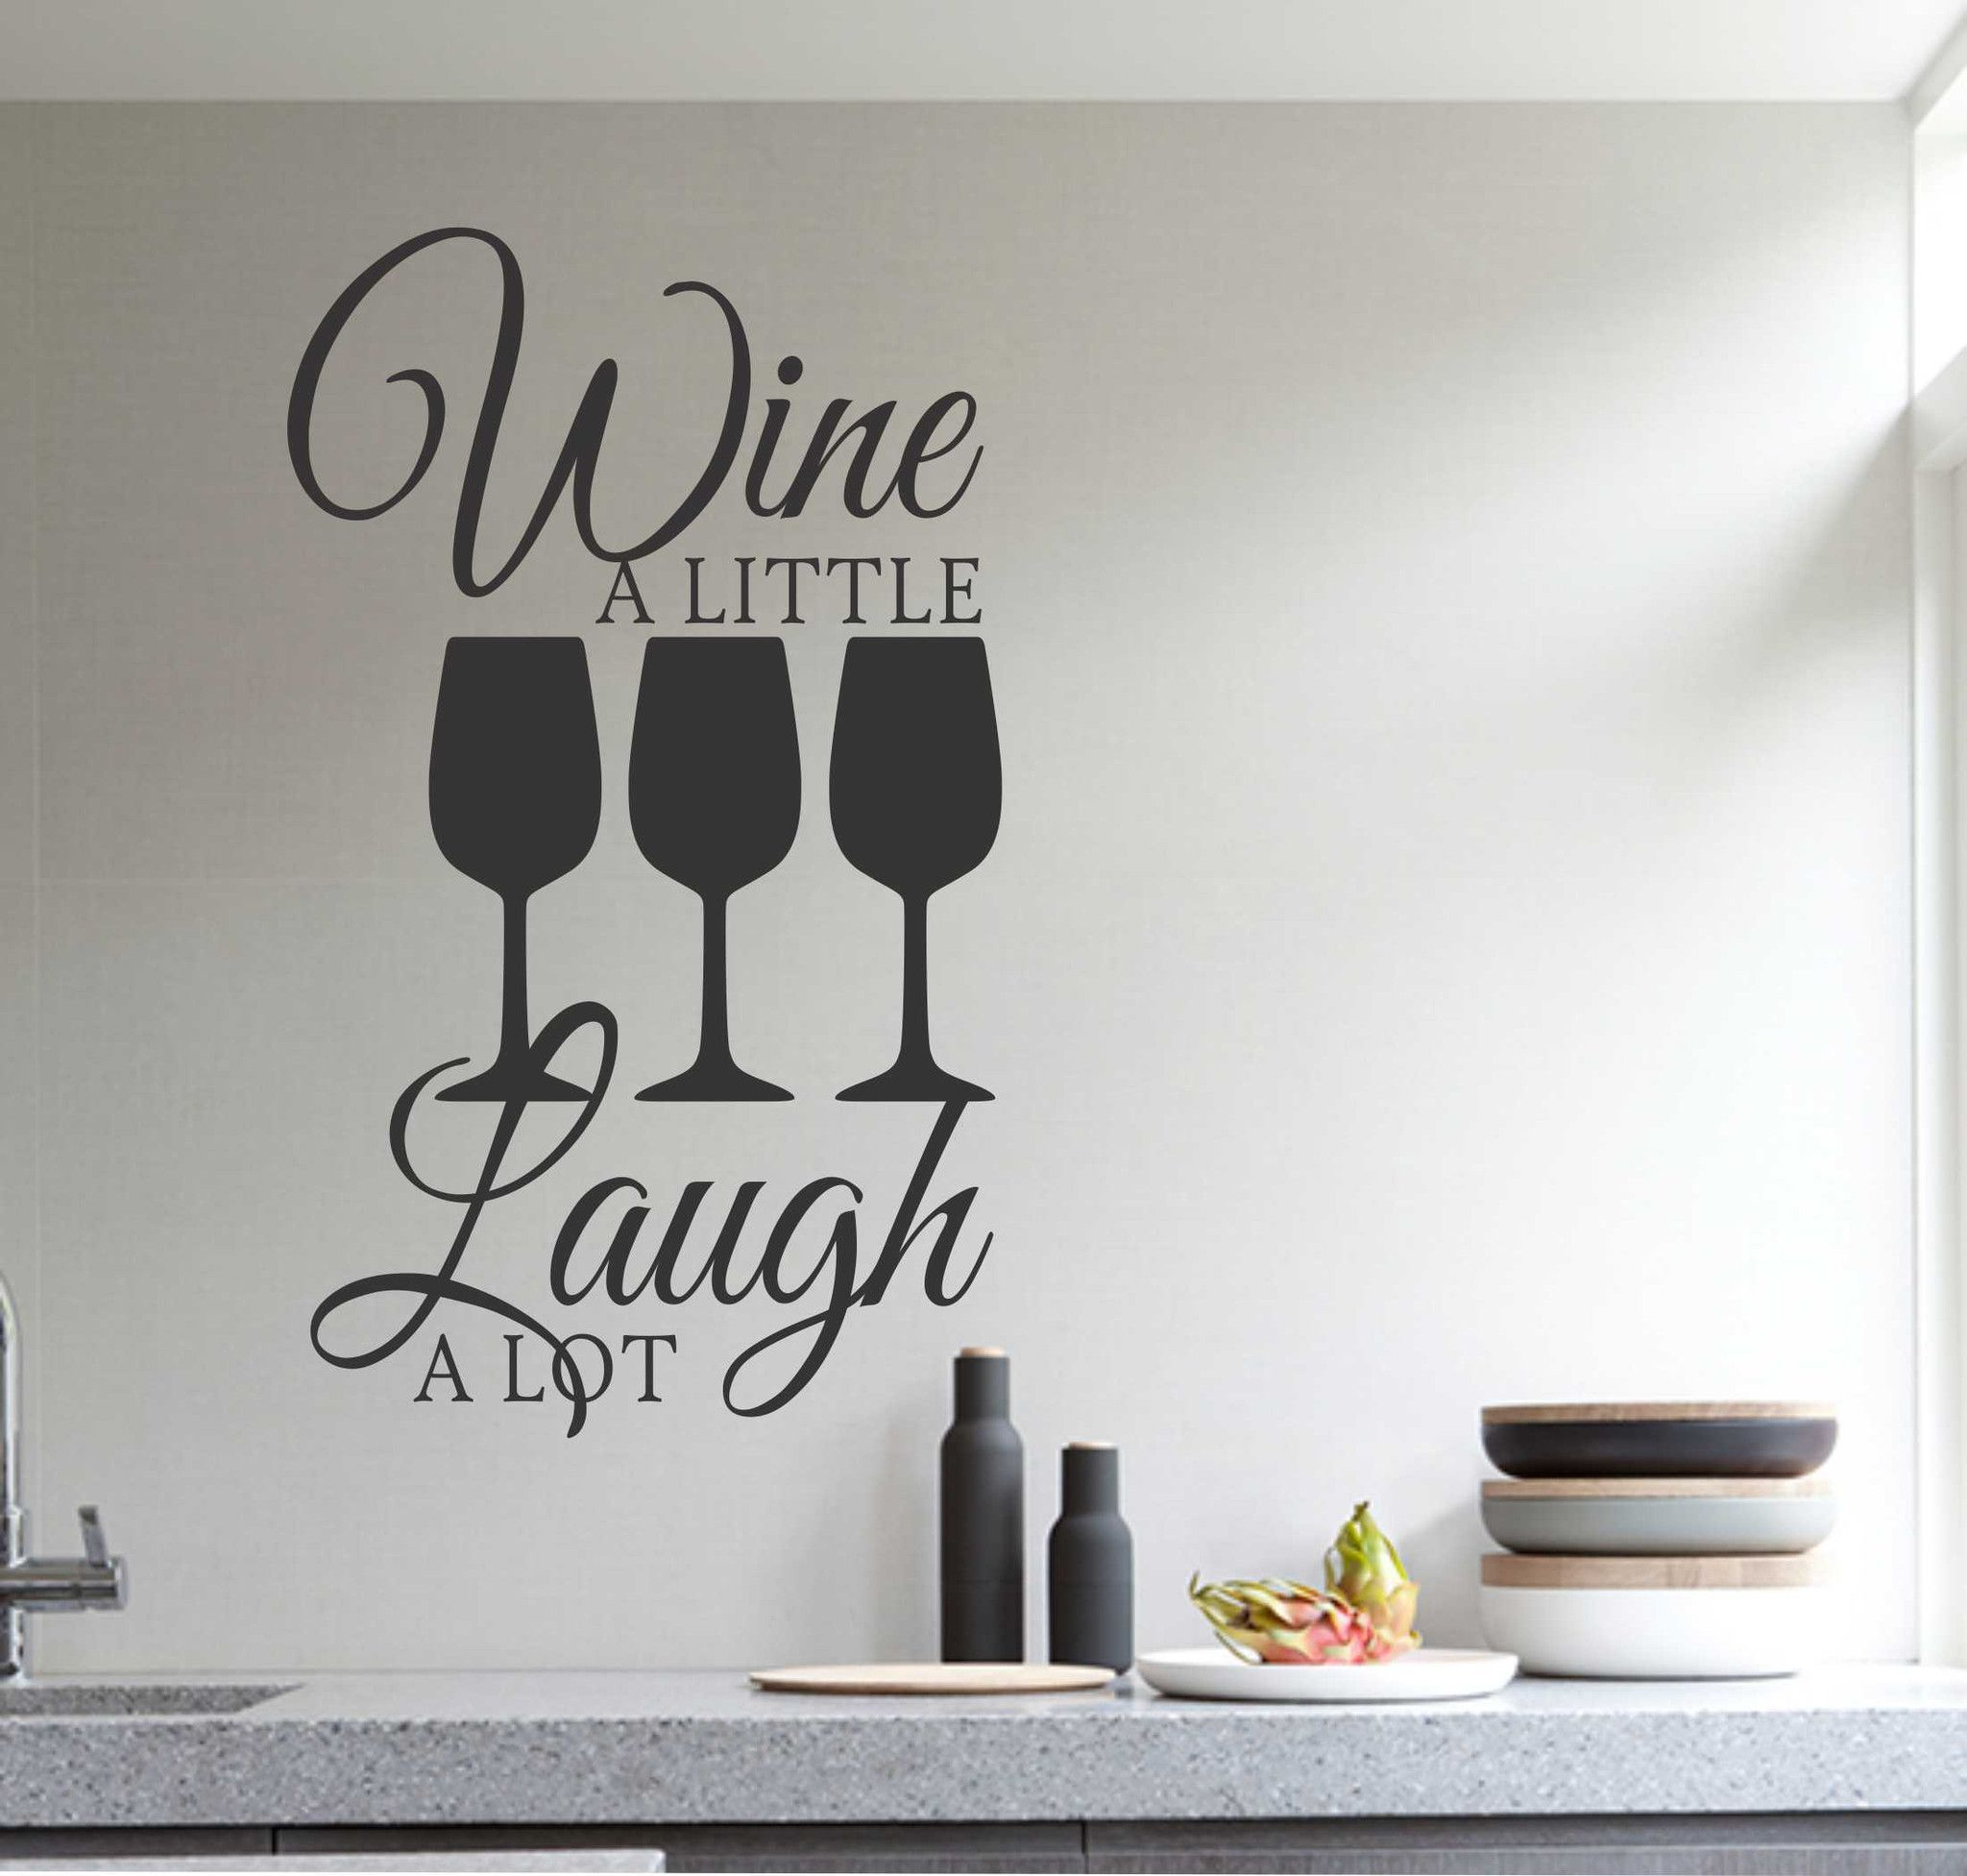 Laundry Room Vinyl Wall Quotes Laugh A Lot Vinyl Wall Lettering  Wall Quote  Vinyl Decals